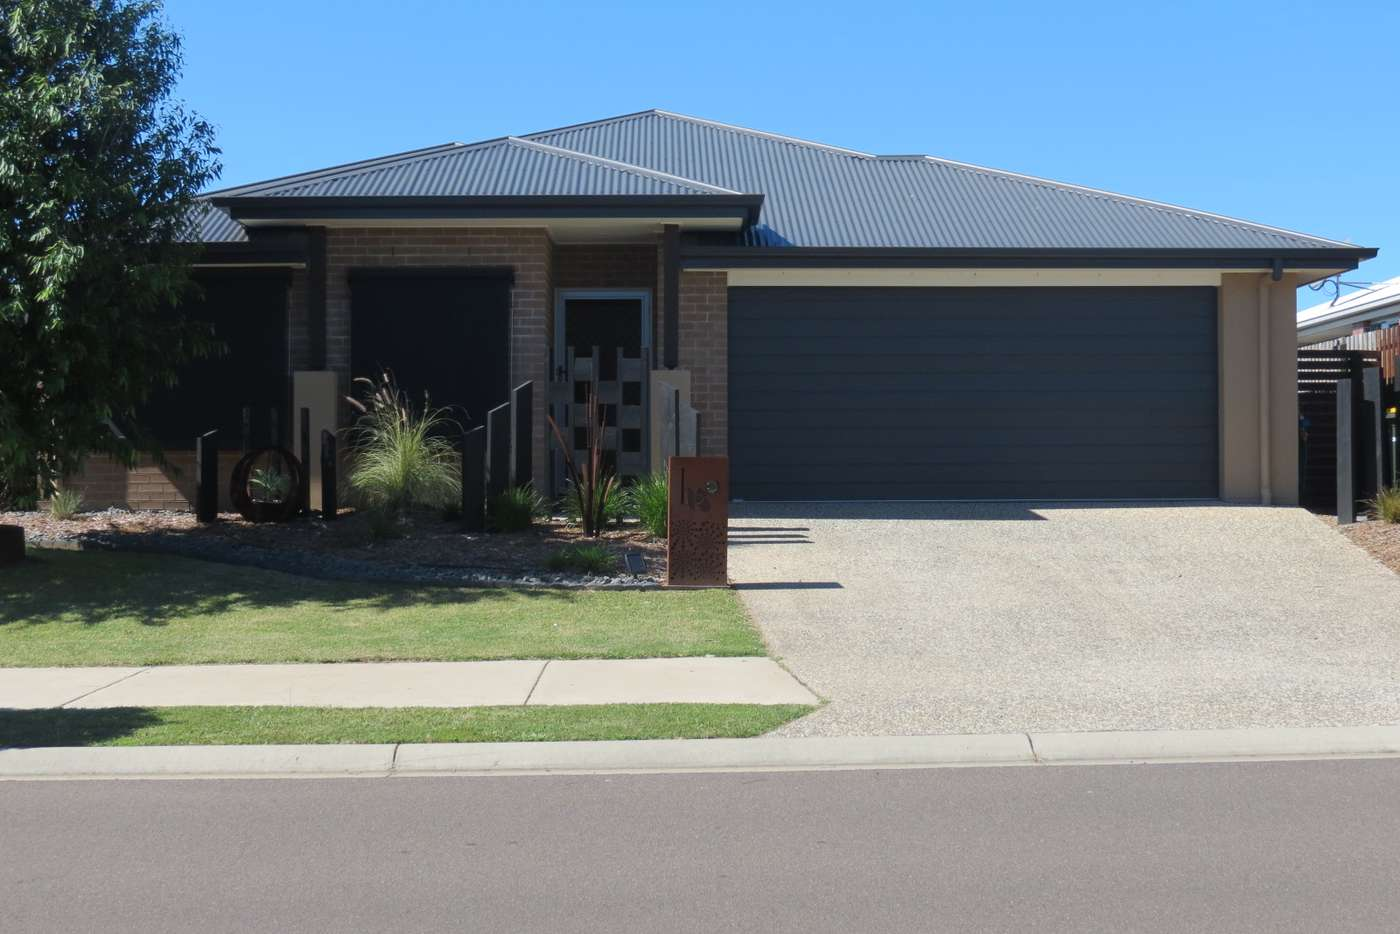 Main view of Homely house listing, 16 Blaxland Road, Urraween QLD 4655